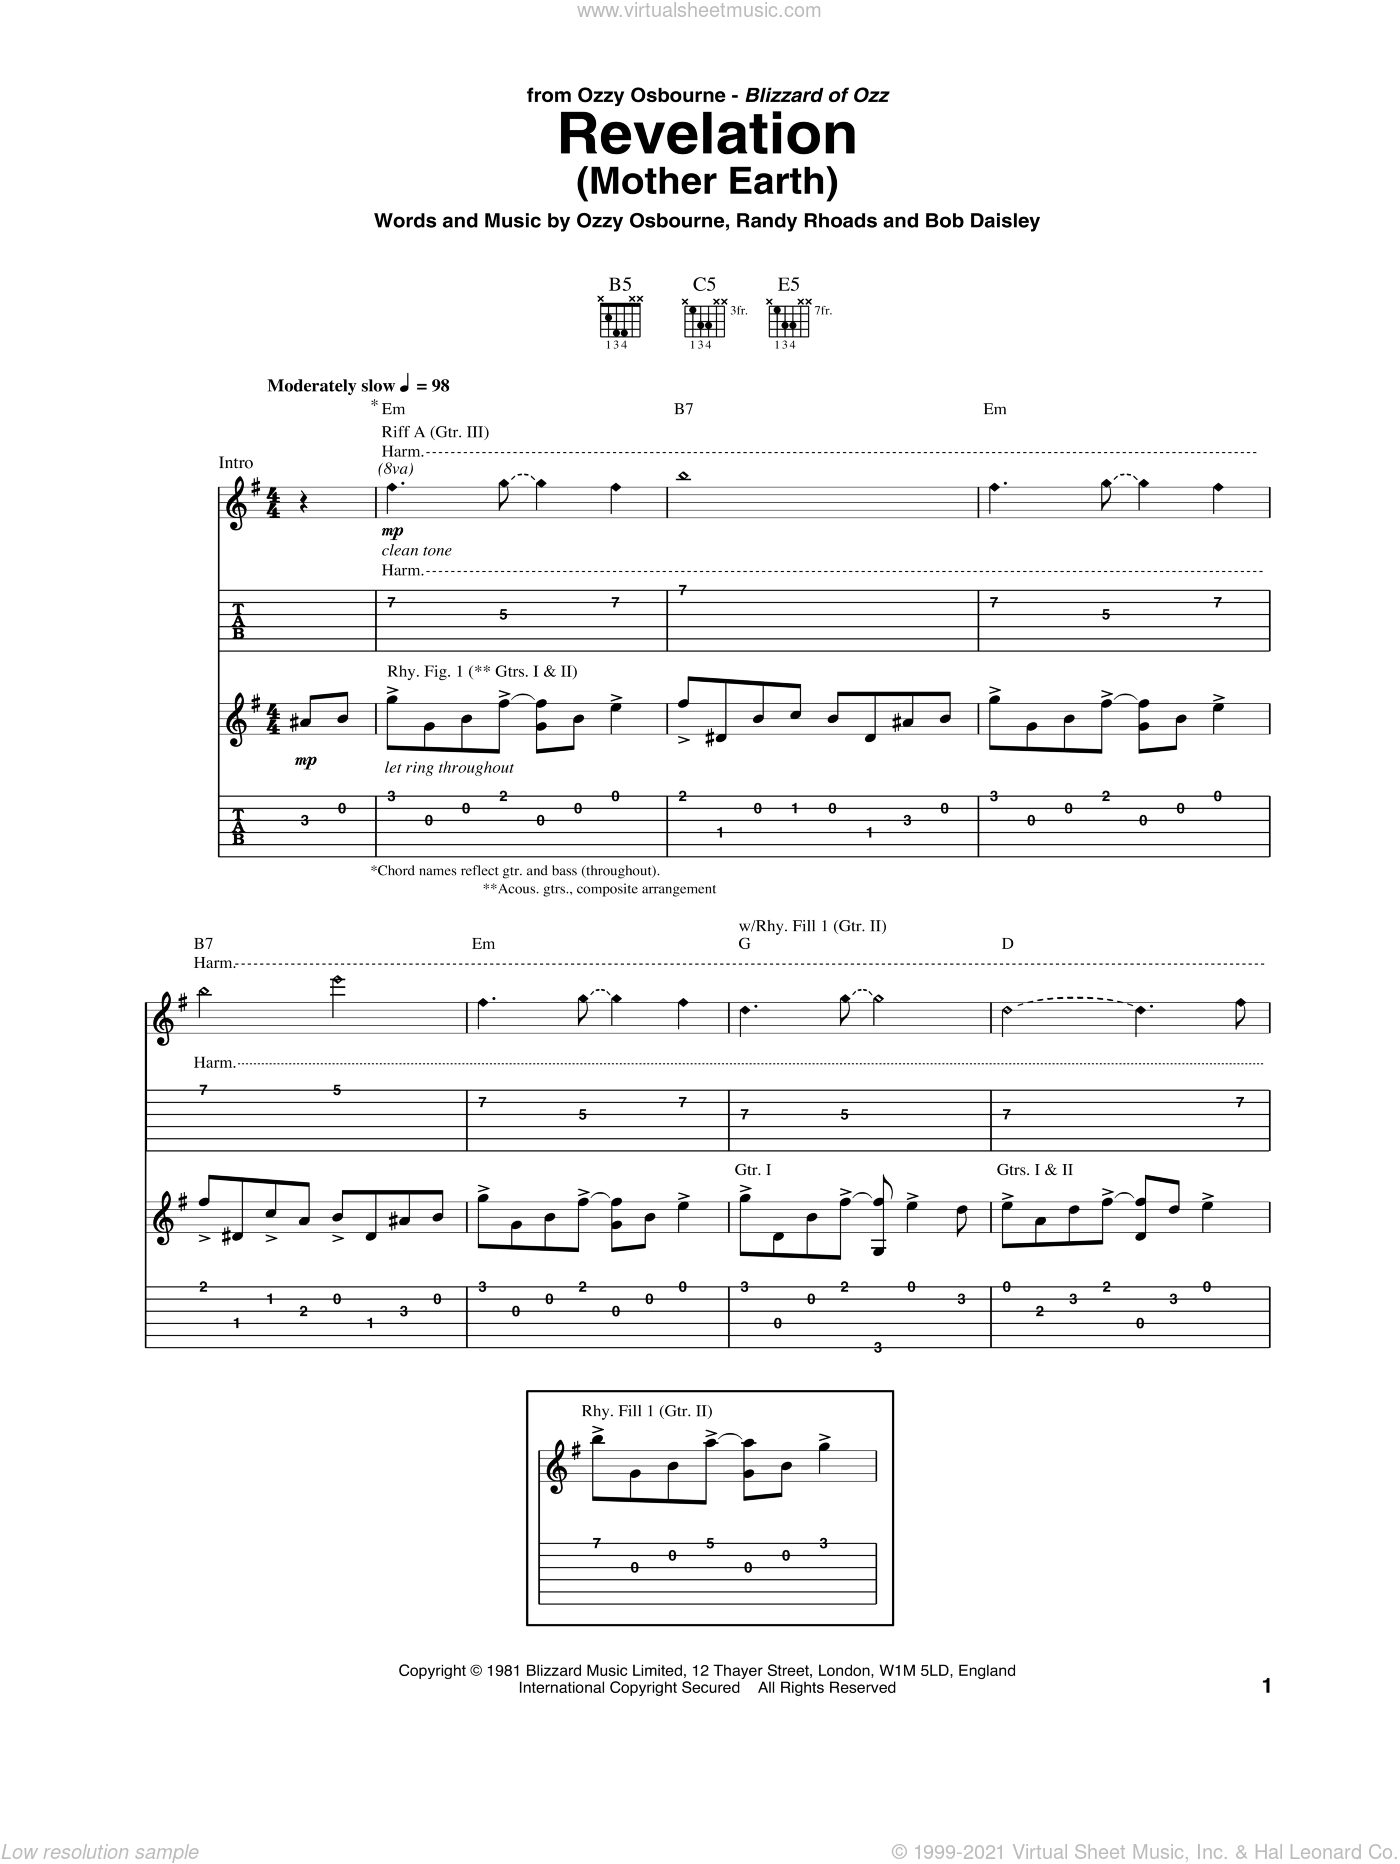 Revelation (Mother Earth) sheet music for guitar (tablature) by Randy Rhoads, Bob Daisley and Ozzy Osbourne. Score Image Preview.